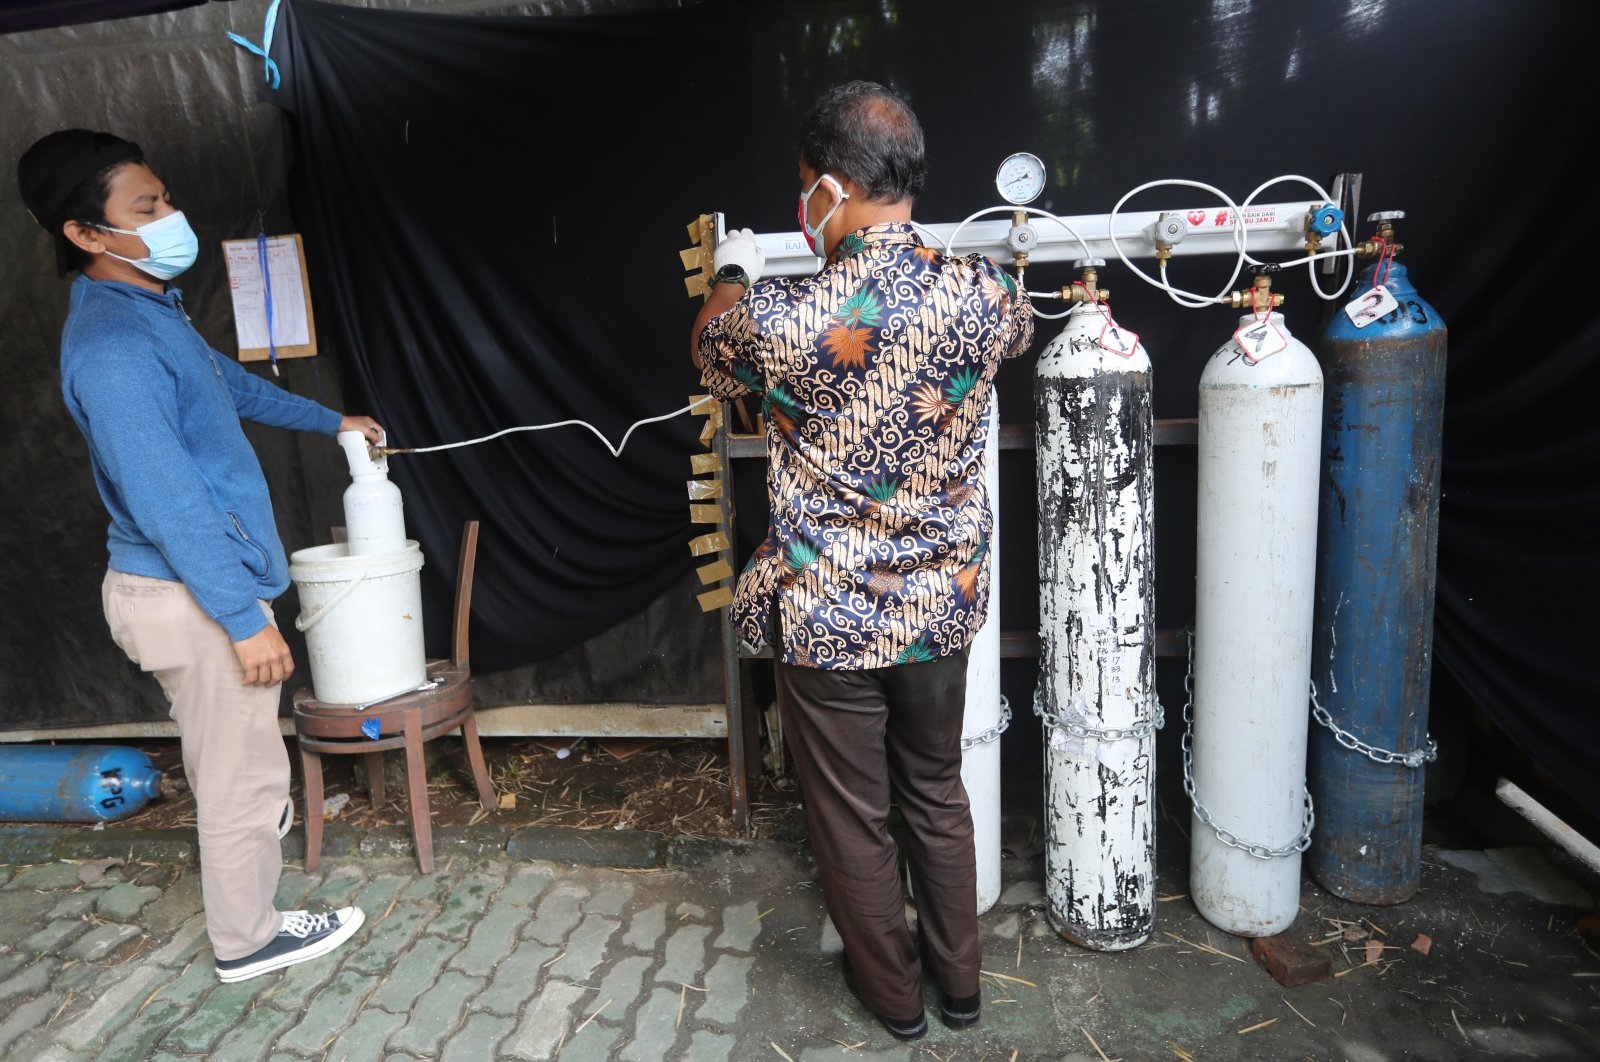 Two Indonesian volunteers refill oxygen tubes at a free oxygen refill station amid a rising number of COVID-19 cases, at Graha Pena Building in Bogor, Indonesia, 06 August 2021. (EPA Photo)